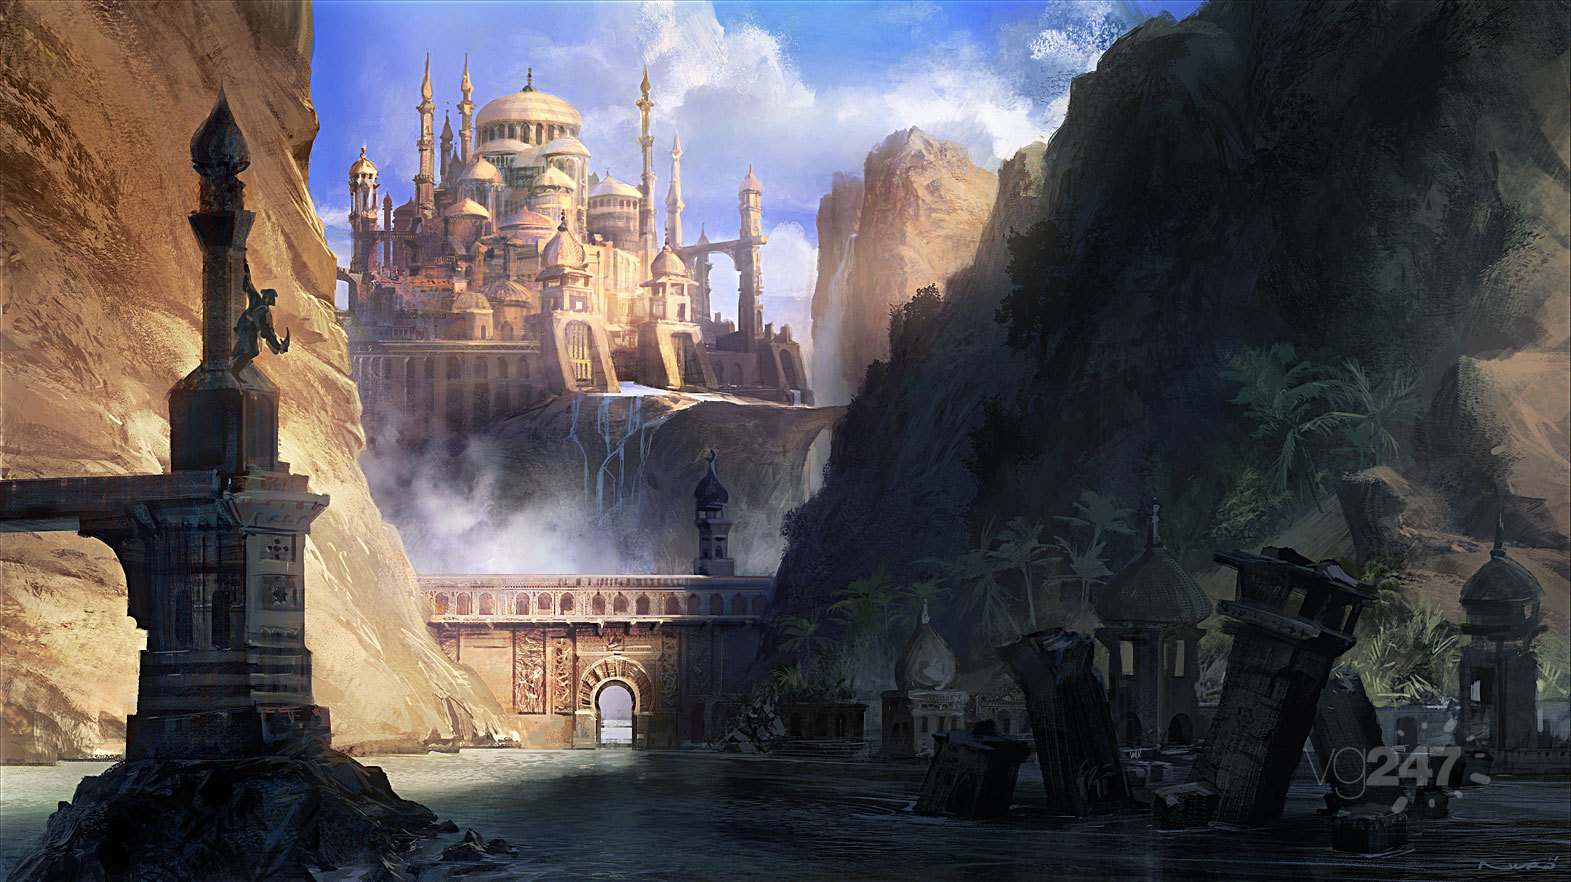 Prince Of Persia: The Forgotten Sands Details And Images